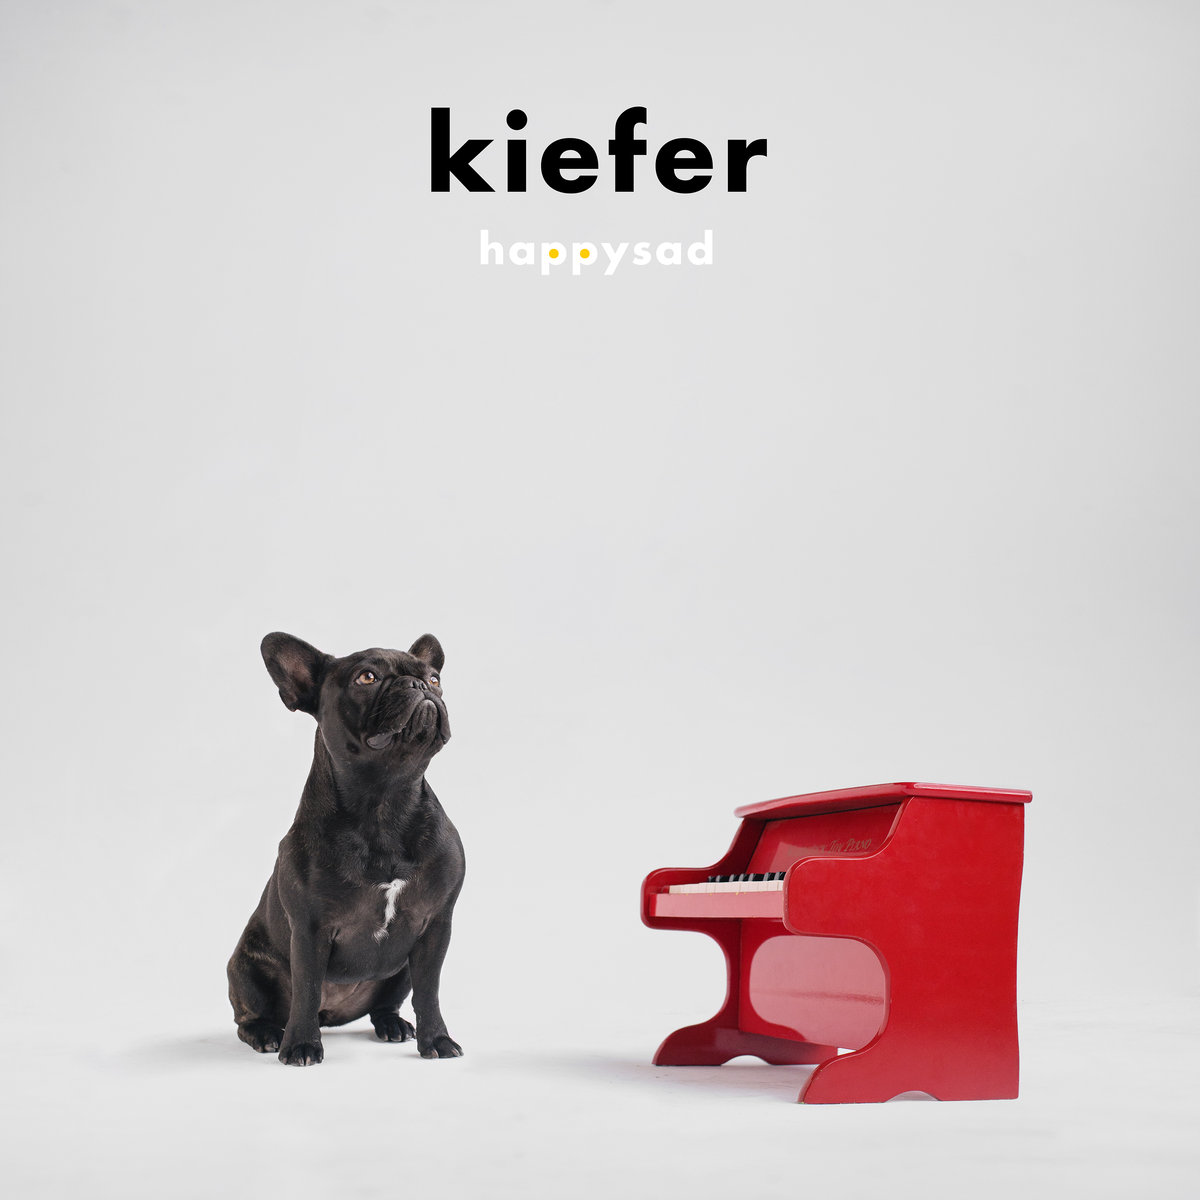 Kiefer - Happysad Sunday